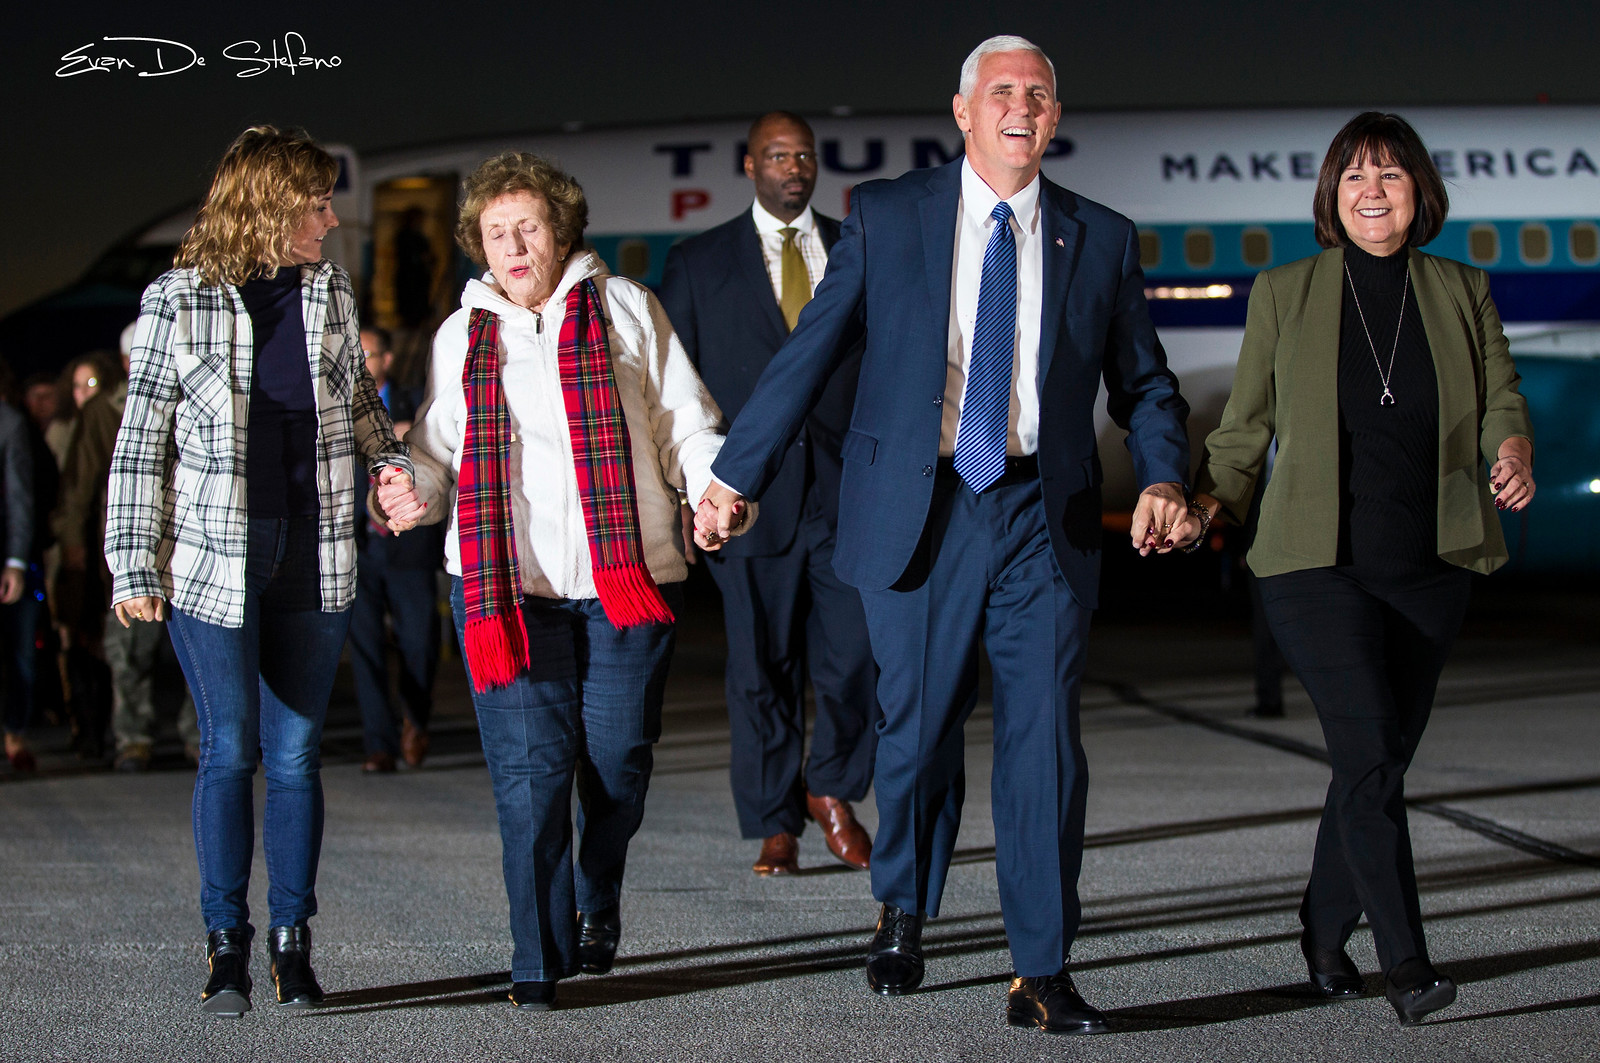 Vice President-Elect Mike Pence and wife Karen Pence (right), mother Nancy Pence (middle), and daughter Charlotte Pence (right) walk towards the crowd of supporters at the Indianapolis Airport on November 10, 2016. Photo/ Evan De Stefano